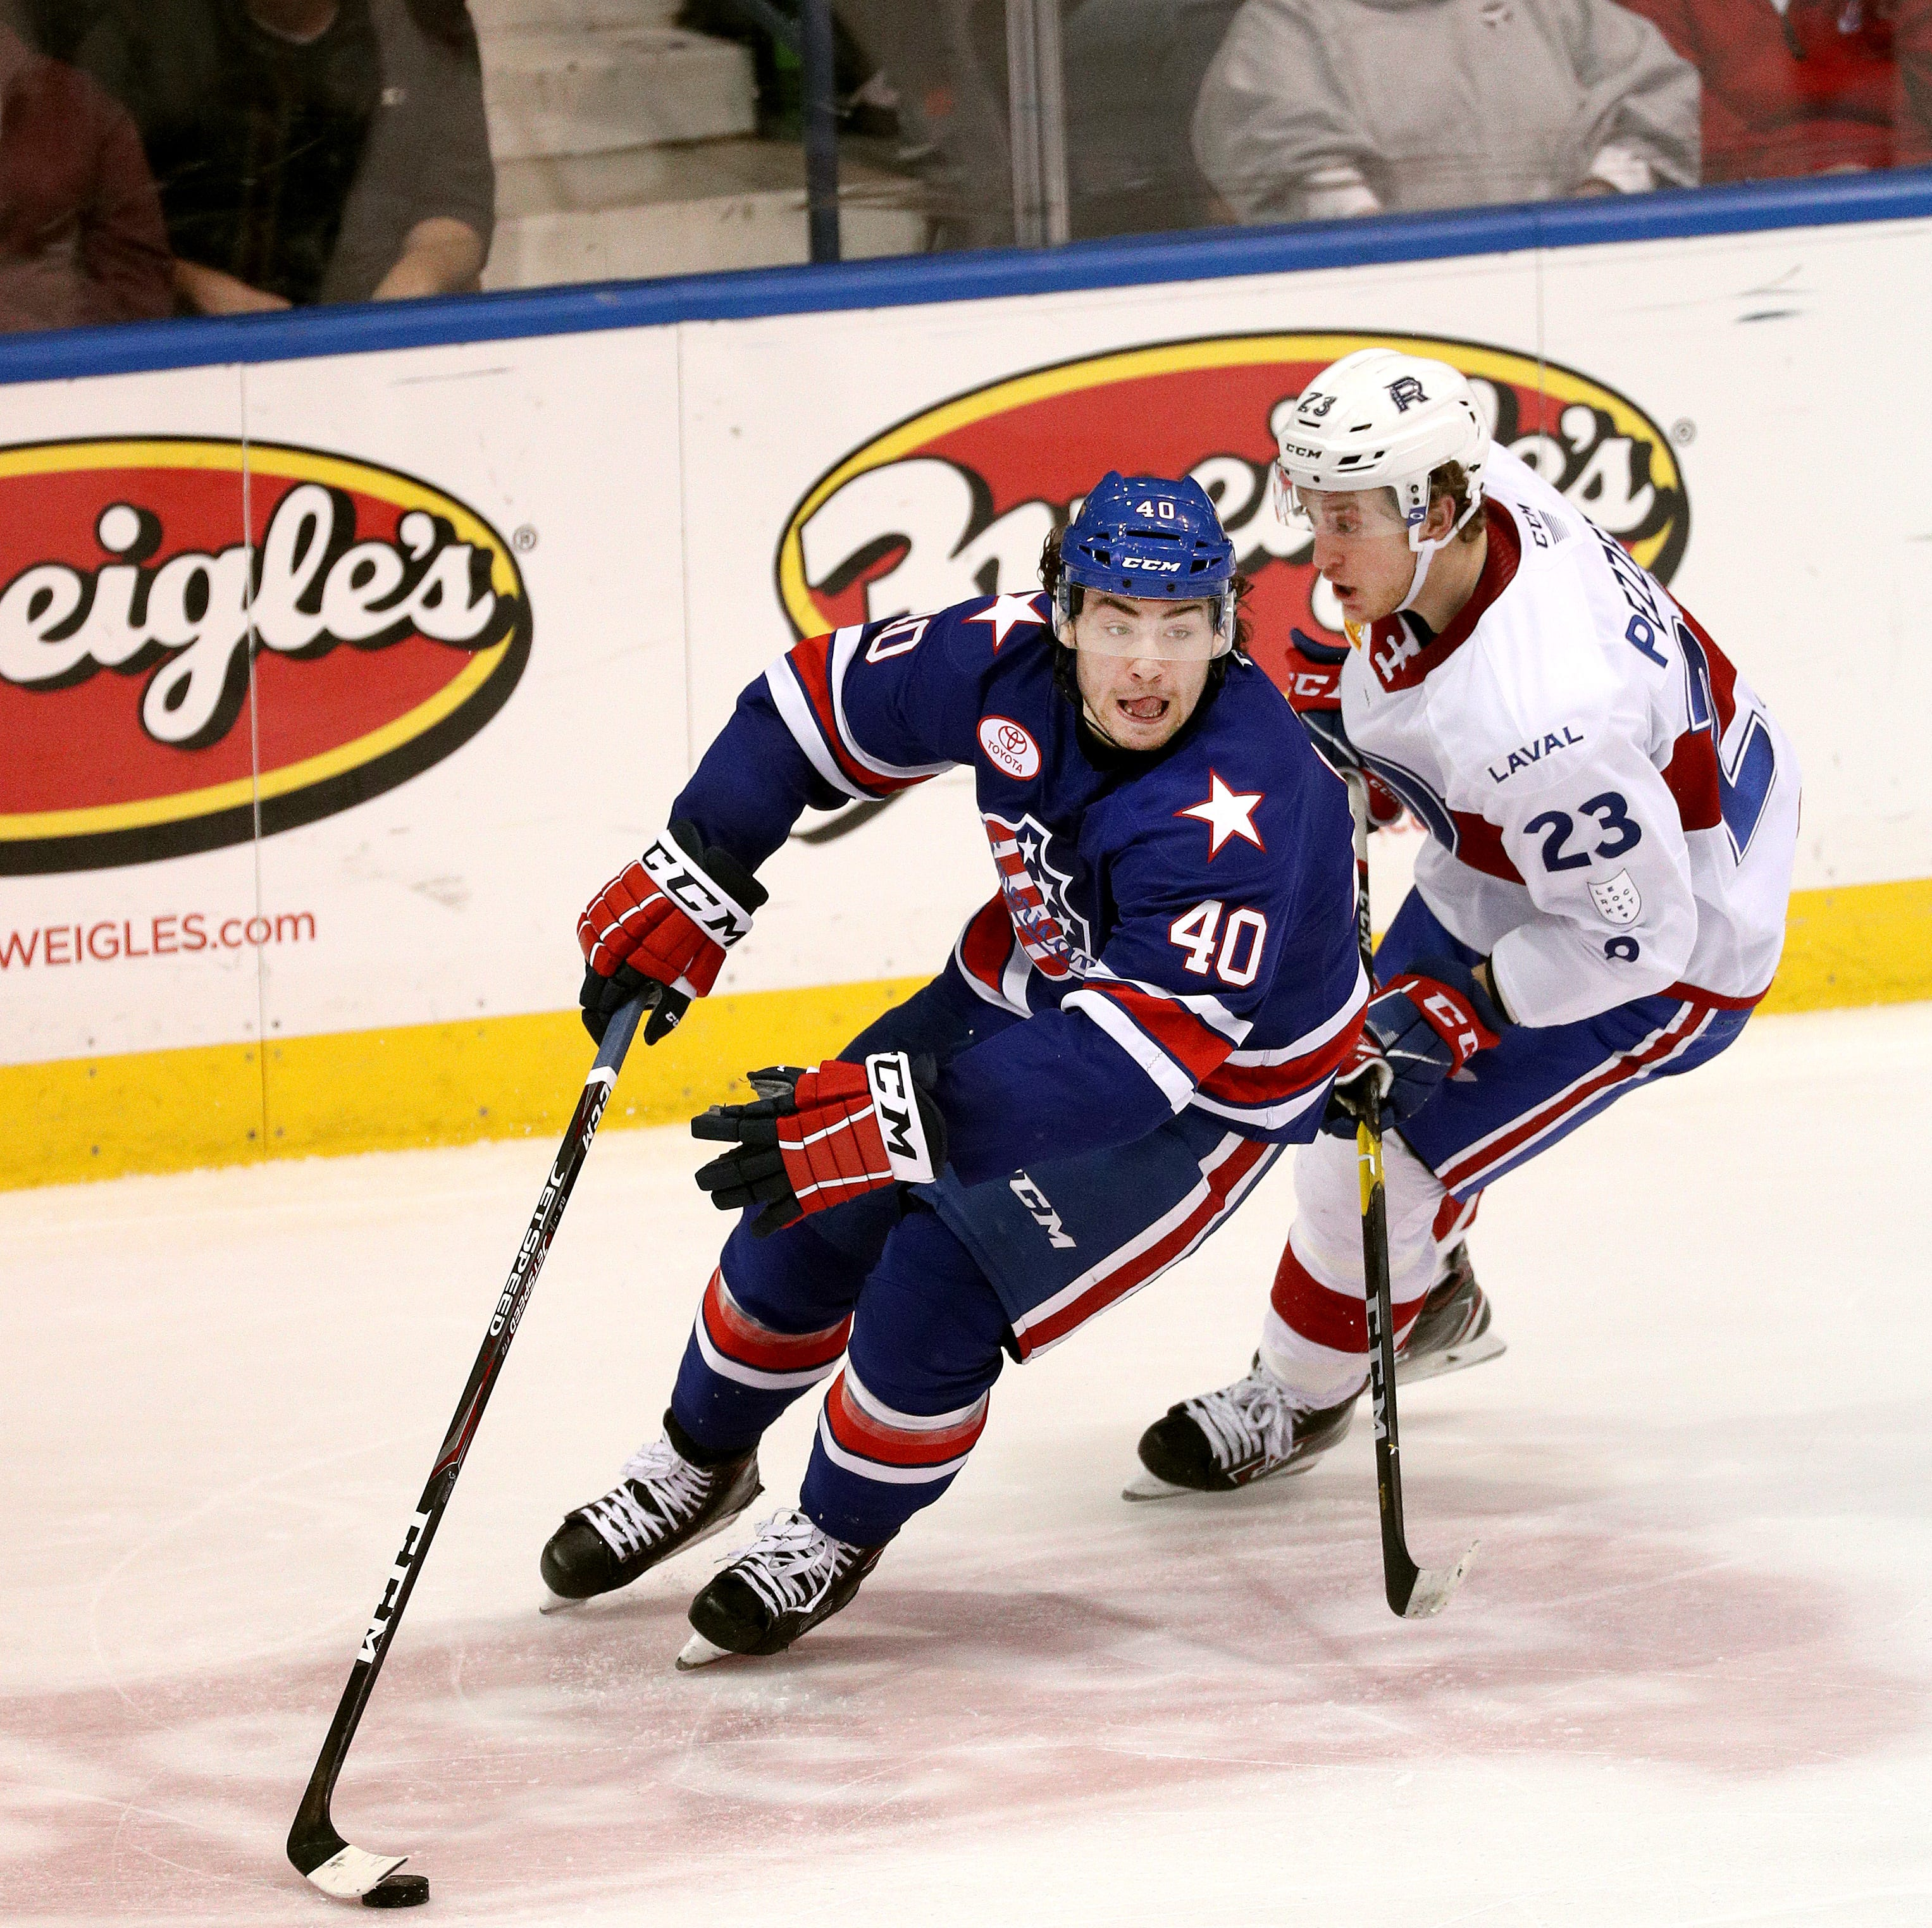 Amerks playoff schedule: Games 1 and 2 are at home vs. Toronto